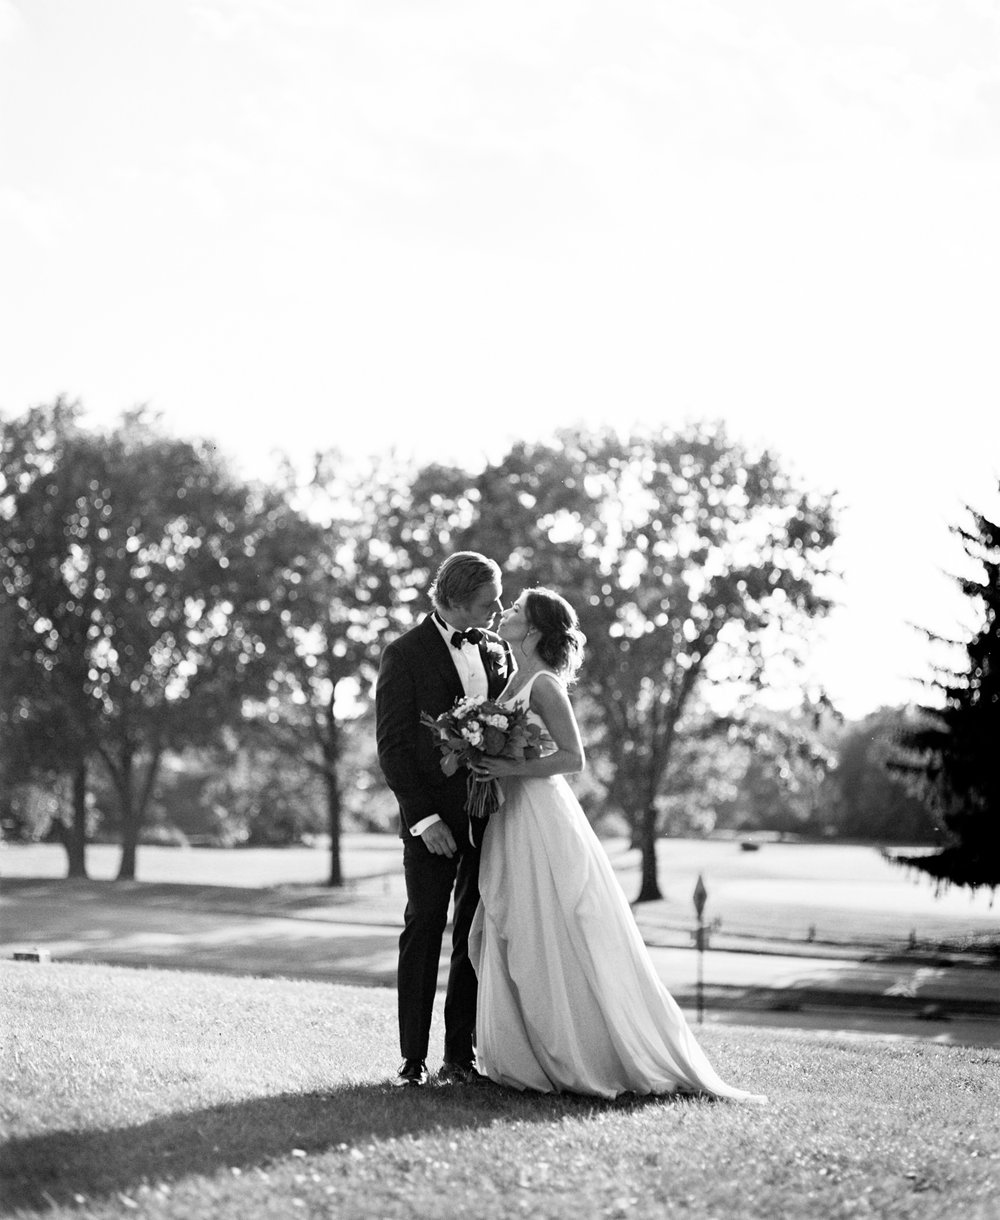 Scott & Eve Wedding (484 of 922).jpg